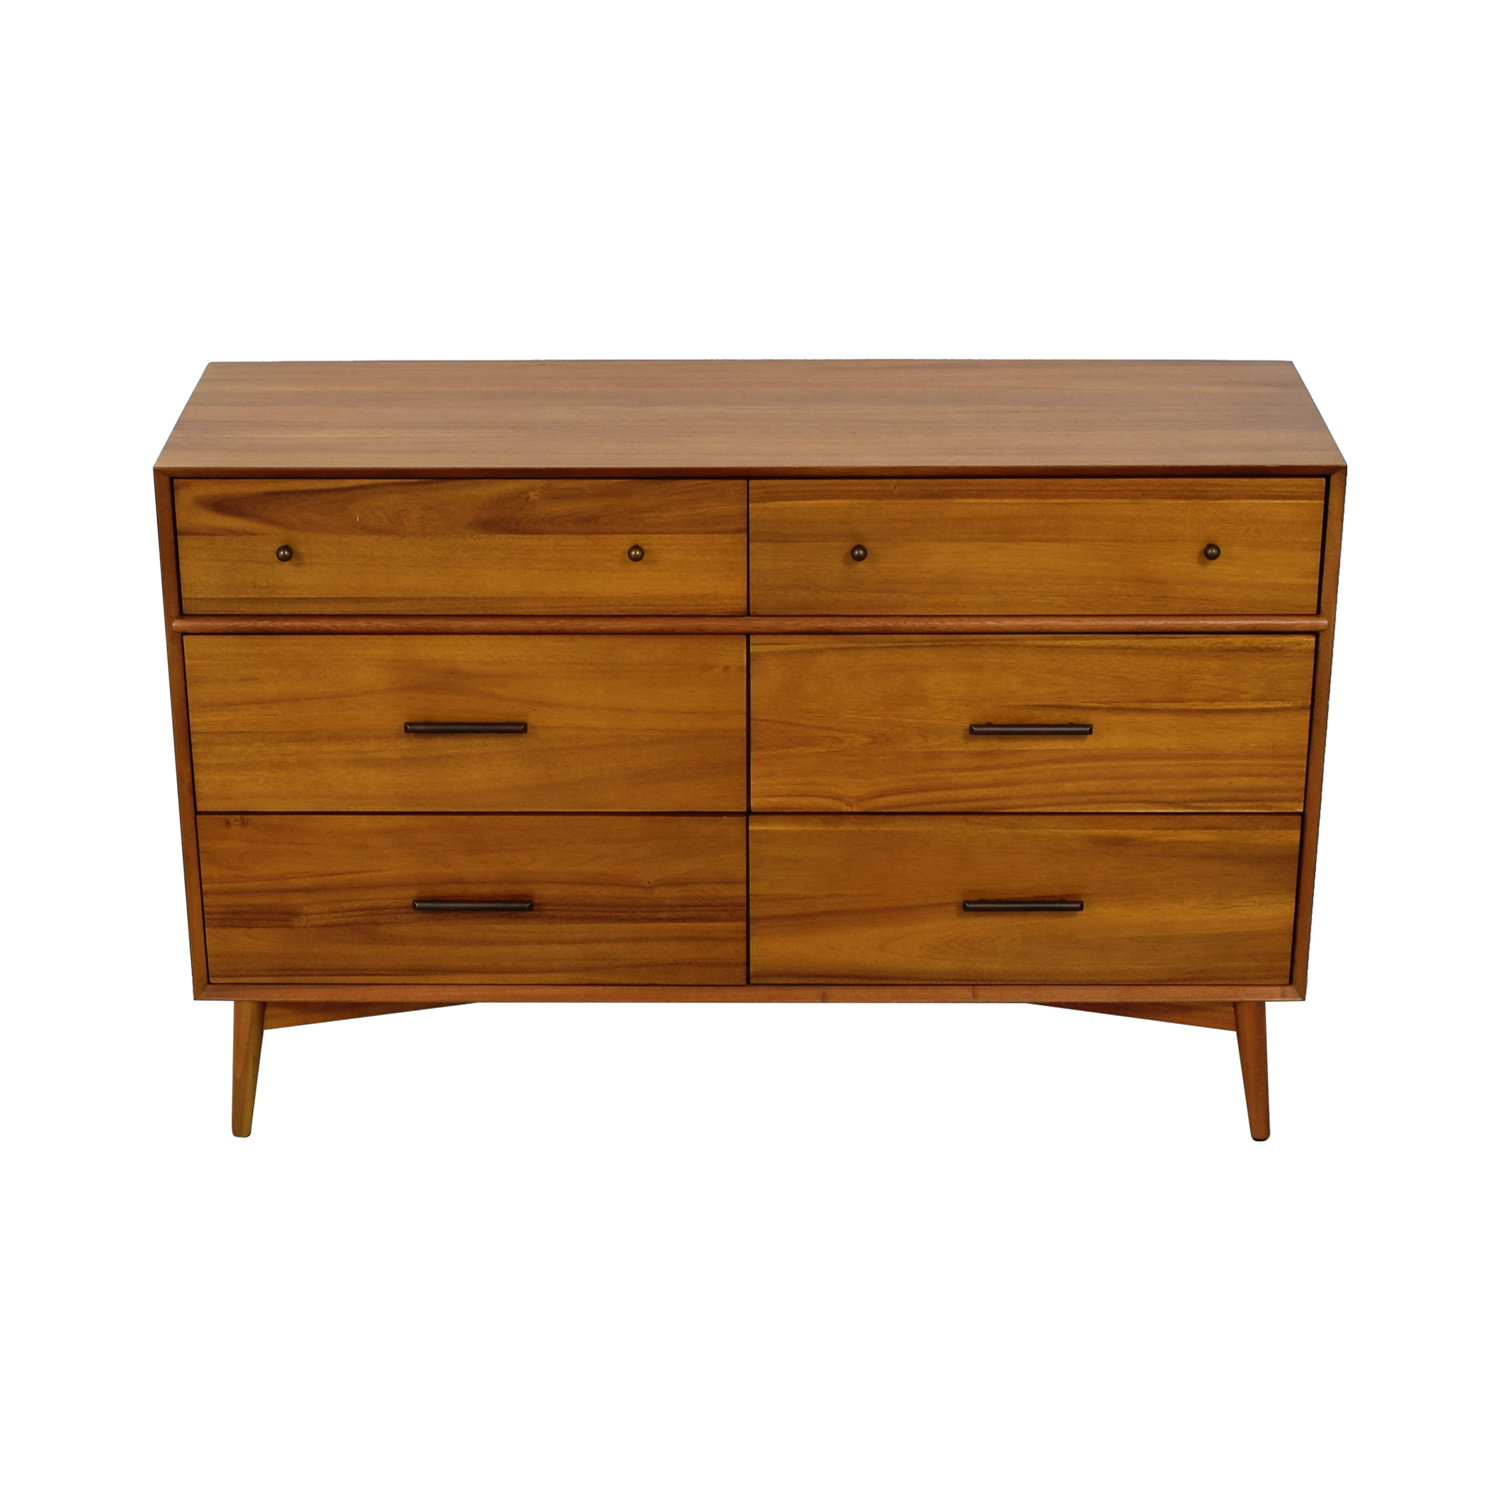 West Elm West Elm Mid-Century Acorn Six-Drawer Dresser Storage